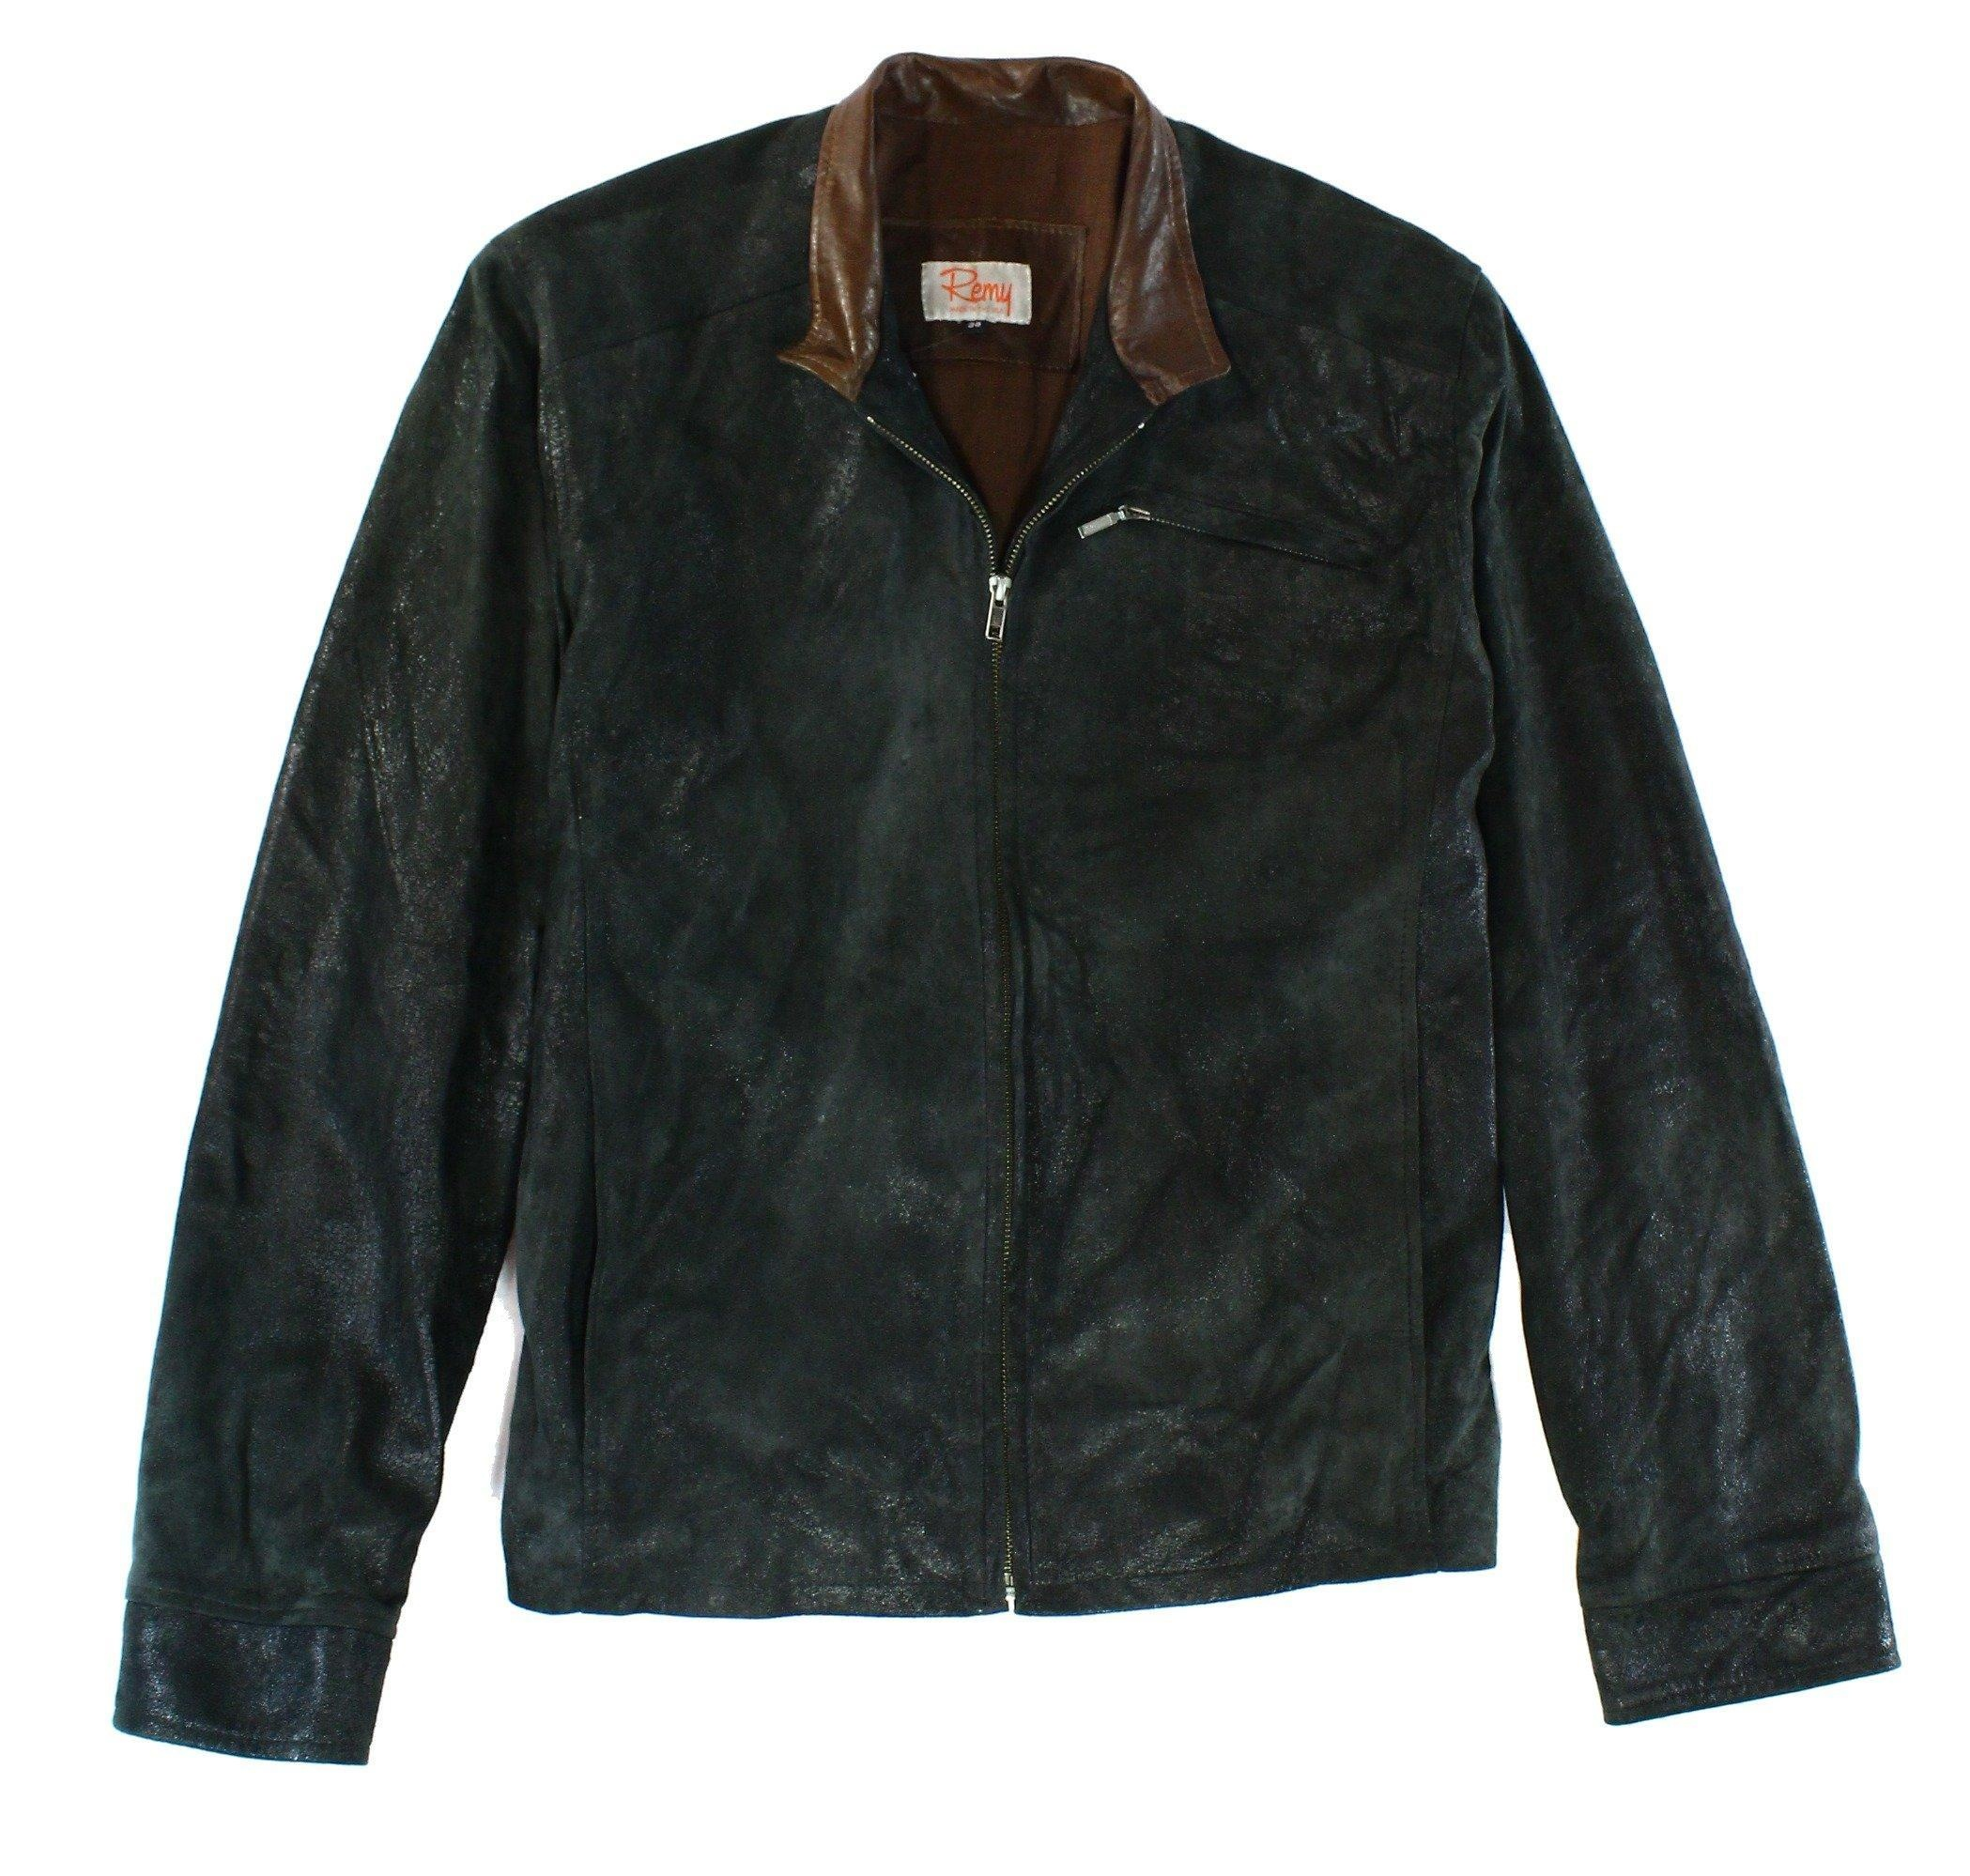 REMY Men Full Zip Crushed Suede Leather Jacket Black 38R